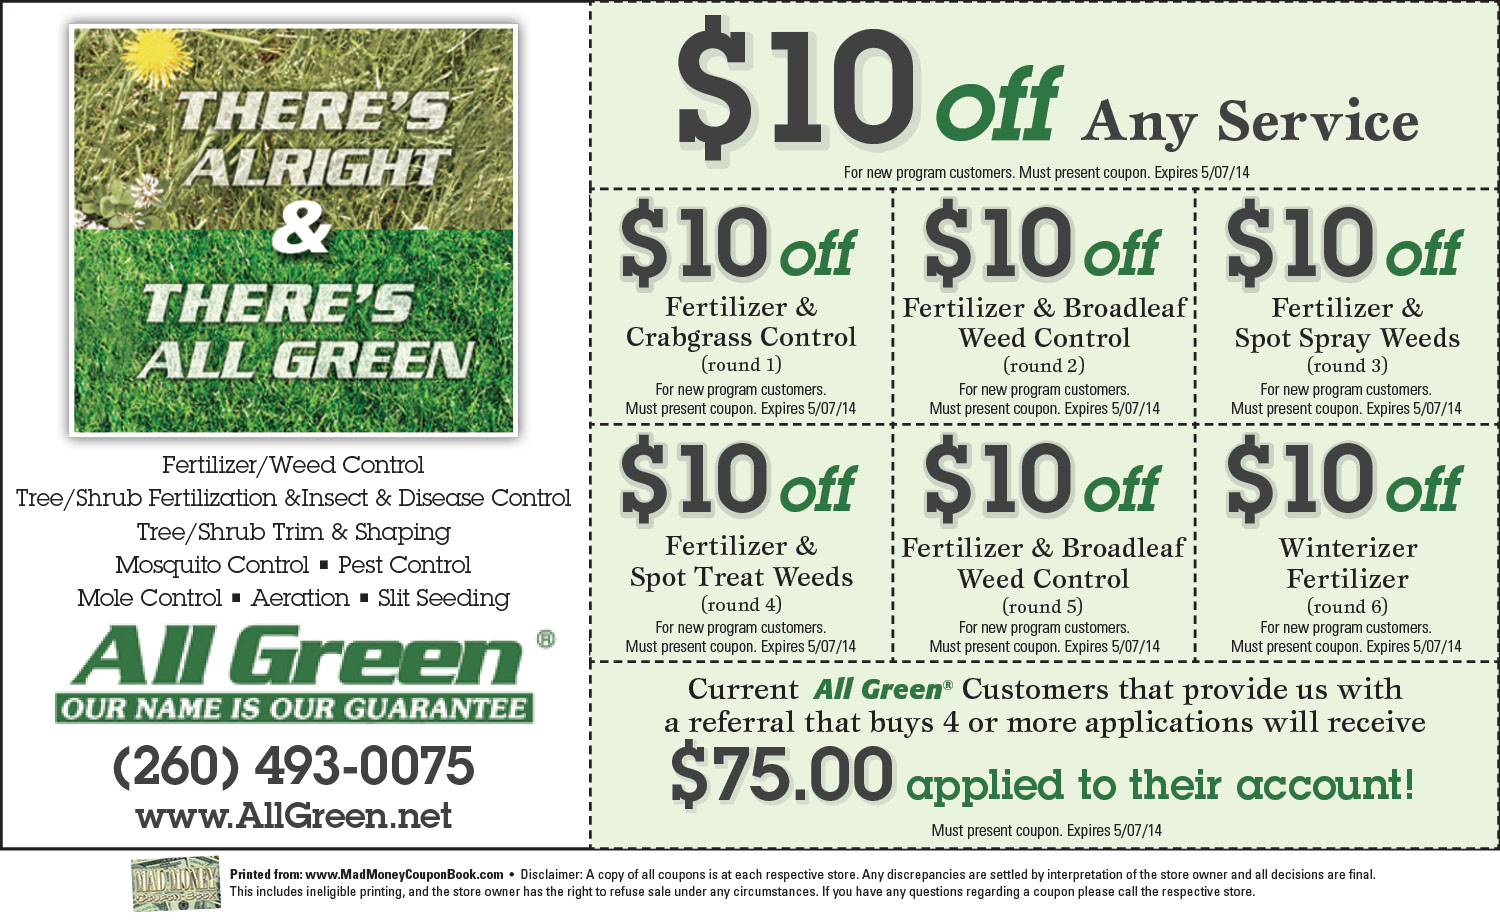 Settlers' green coupon book